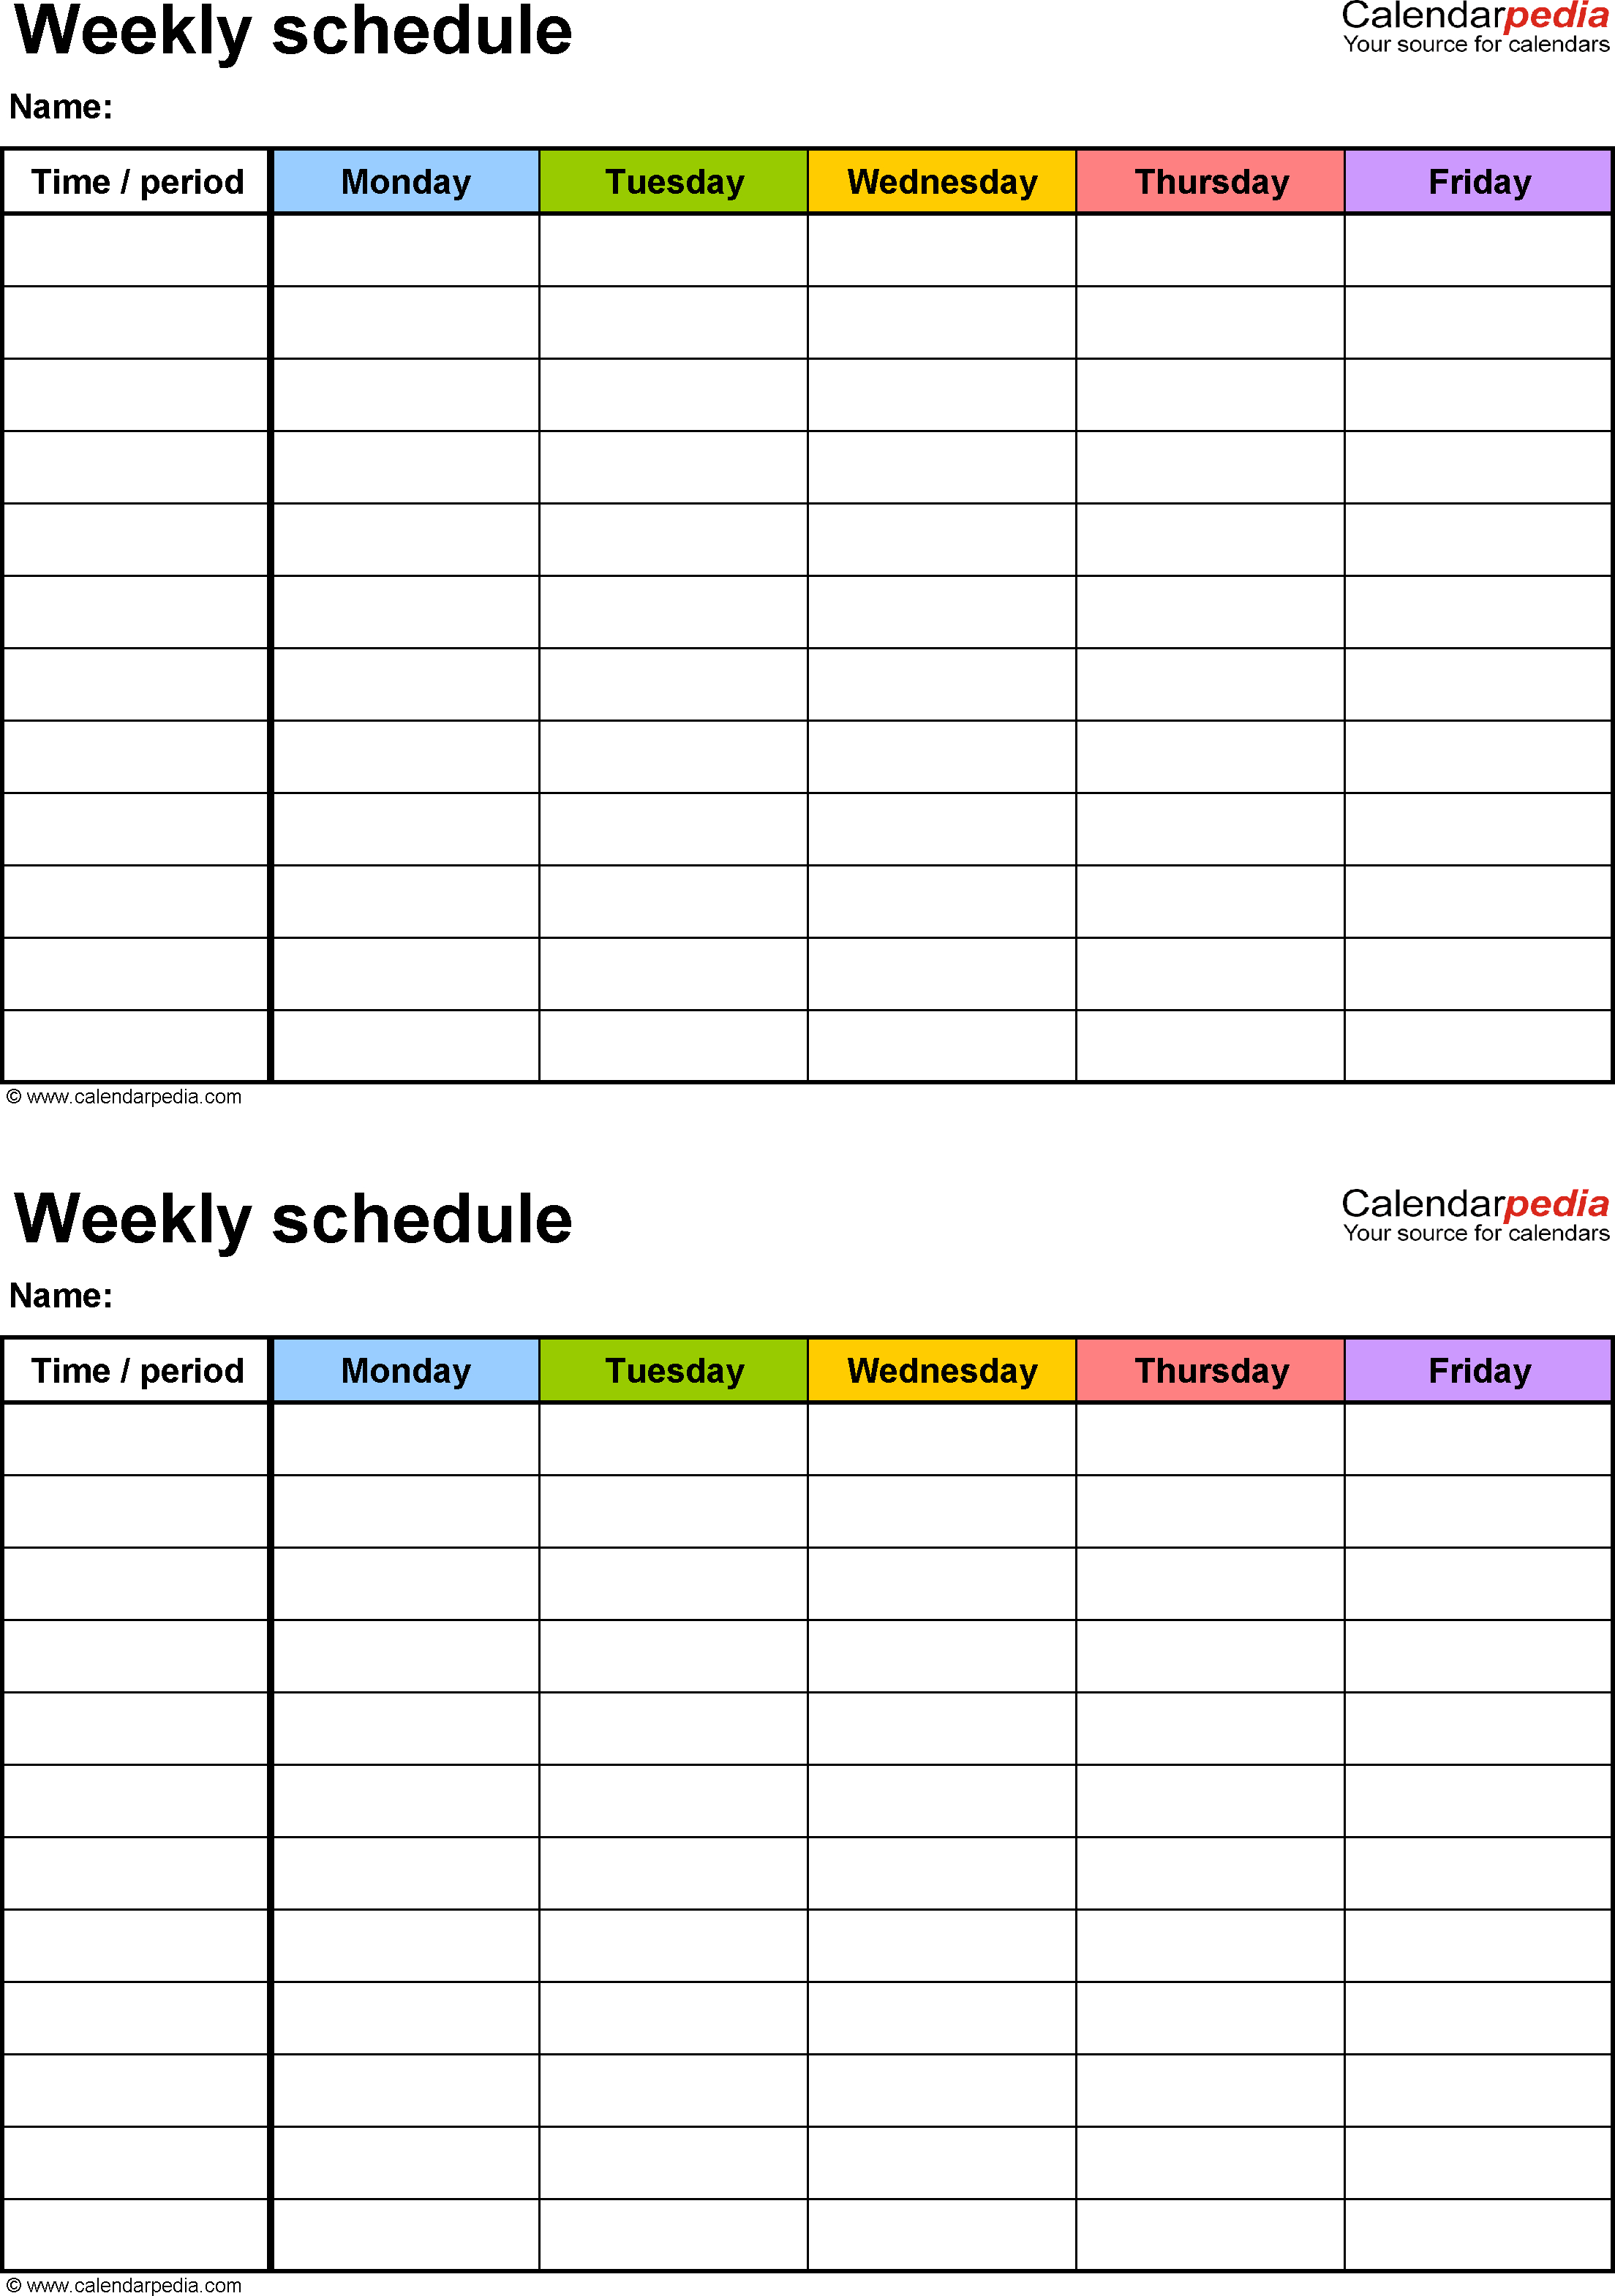 Google Weekly Calendar Template - Infer.ifreezer.co throughout Outlook Calendar Template 5 Week